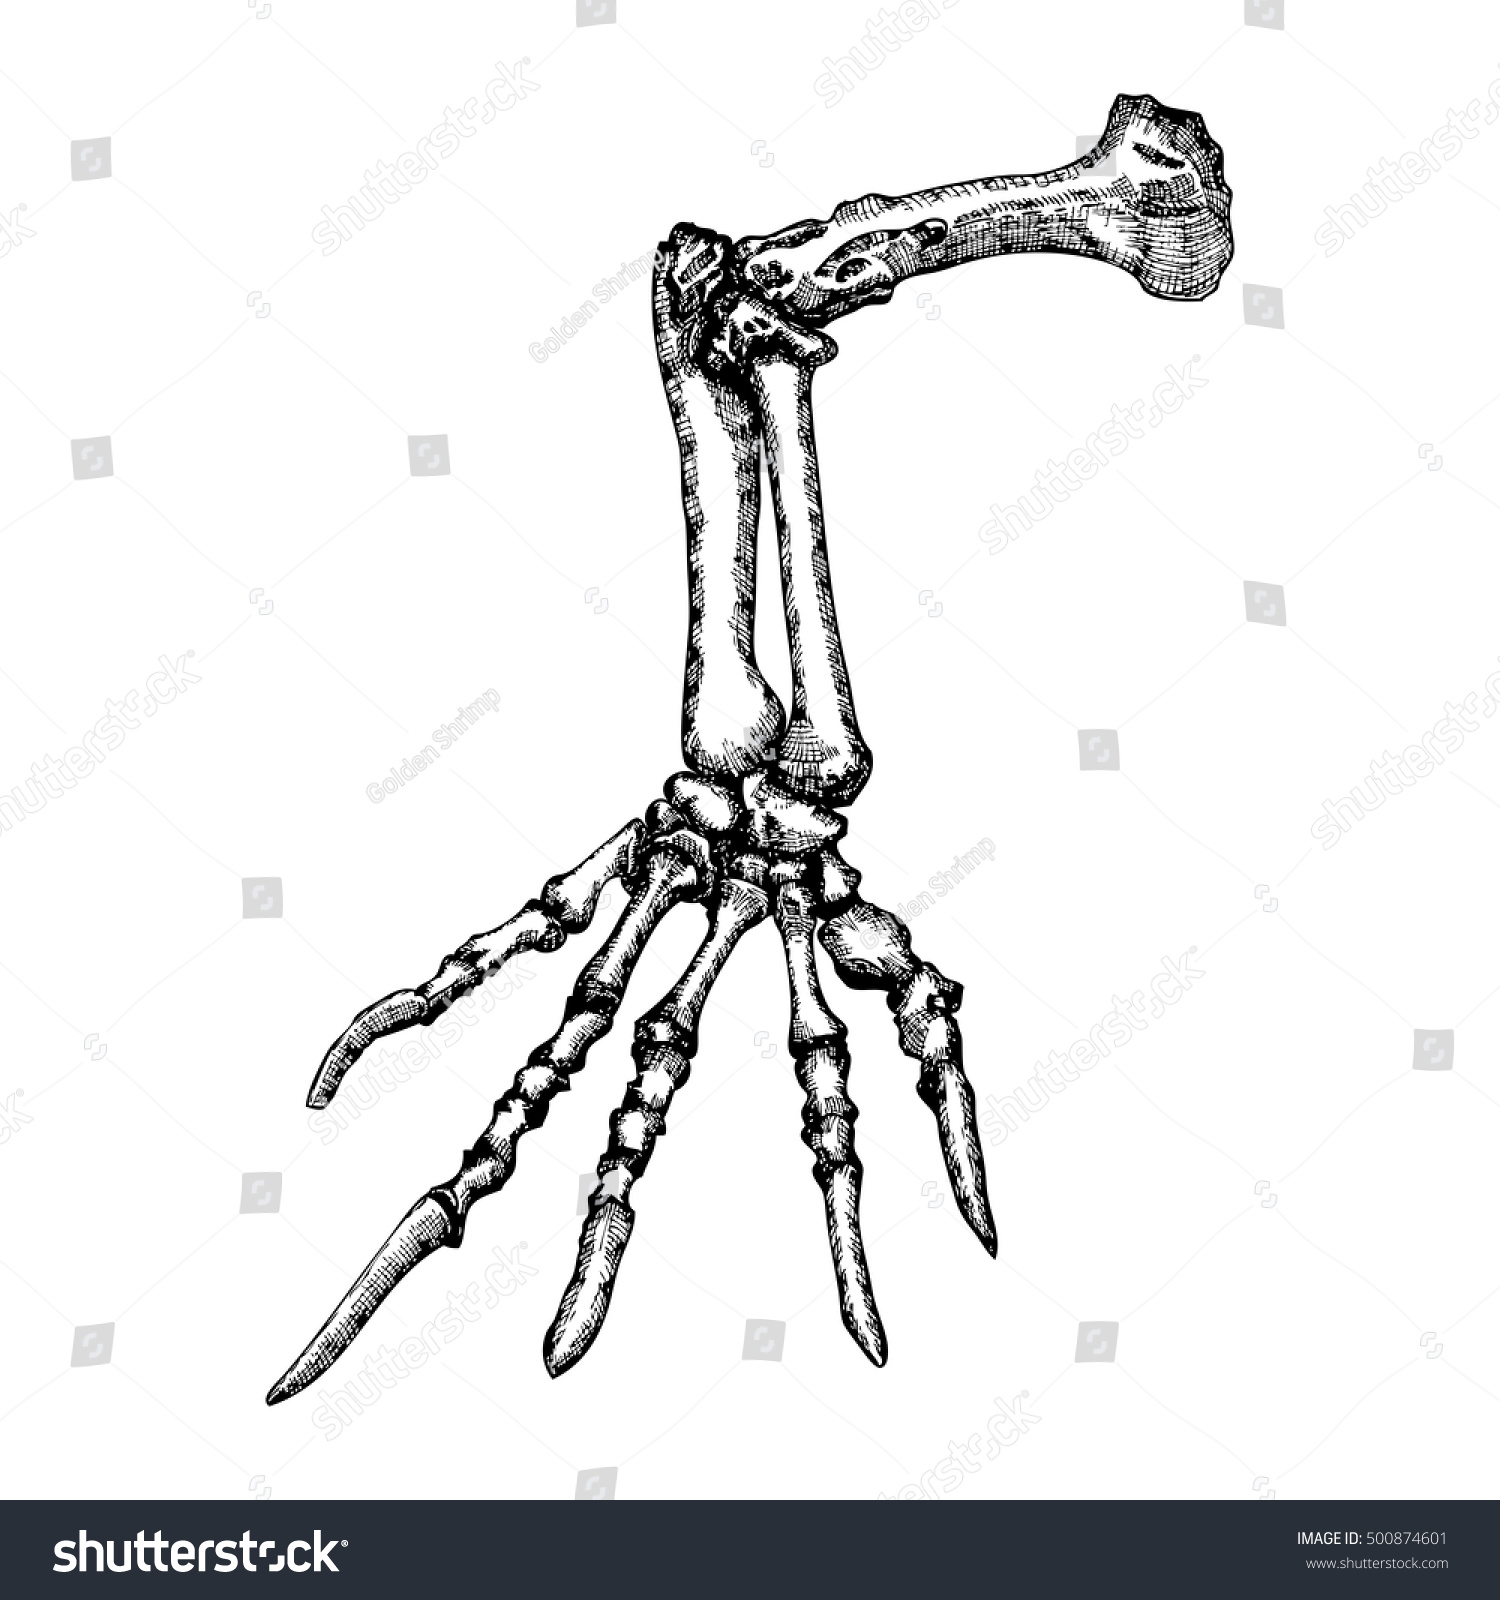 Stylized Drawing Lizard Bones Hand Decorative Stock Vector (2018 ...